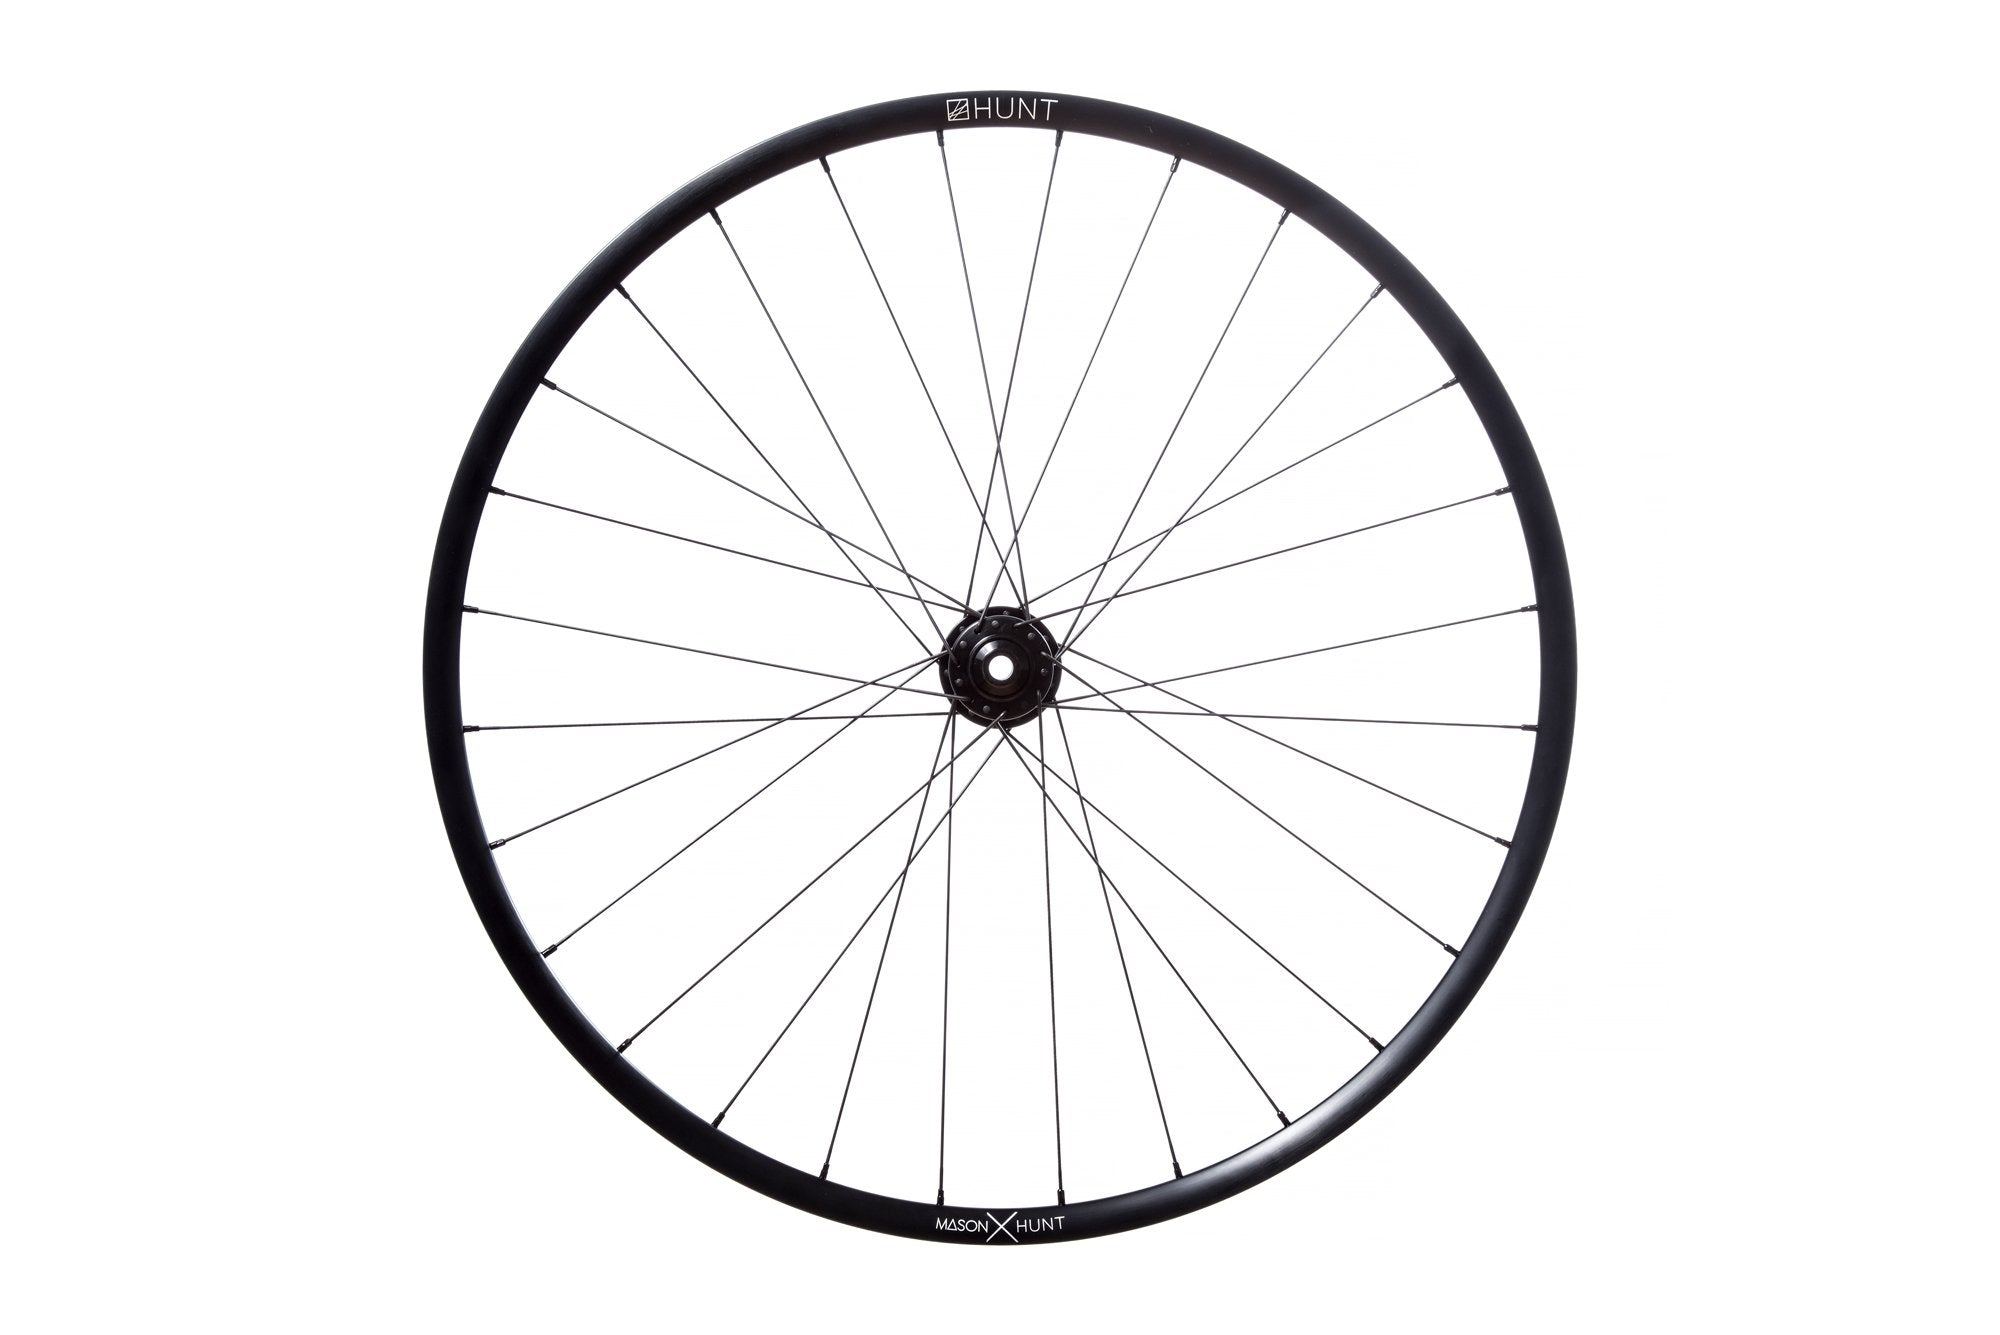 <h1>Rims</h1><i>Strong and light 6066-T6 (+34% tensile strength vs 6061-T6) heat-treated rim features an asymmetric shape which is inverted from front to rear to provide balanced higher spoke tensions meaning your spokes stay tight for longer. The profile is disc-specific, allowing higher-strength to weight as no reinforcement is required for a braking surface. The extra wide rim at 29mm (25mm int) creates a great tire profile with wider 35c+ tyres, giving excellent grip and lower rolling resistance.</i>